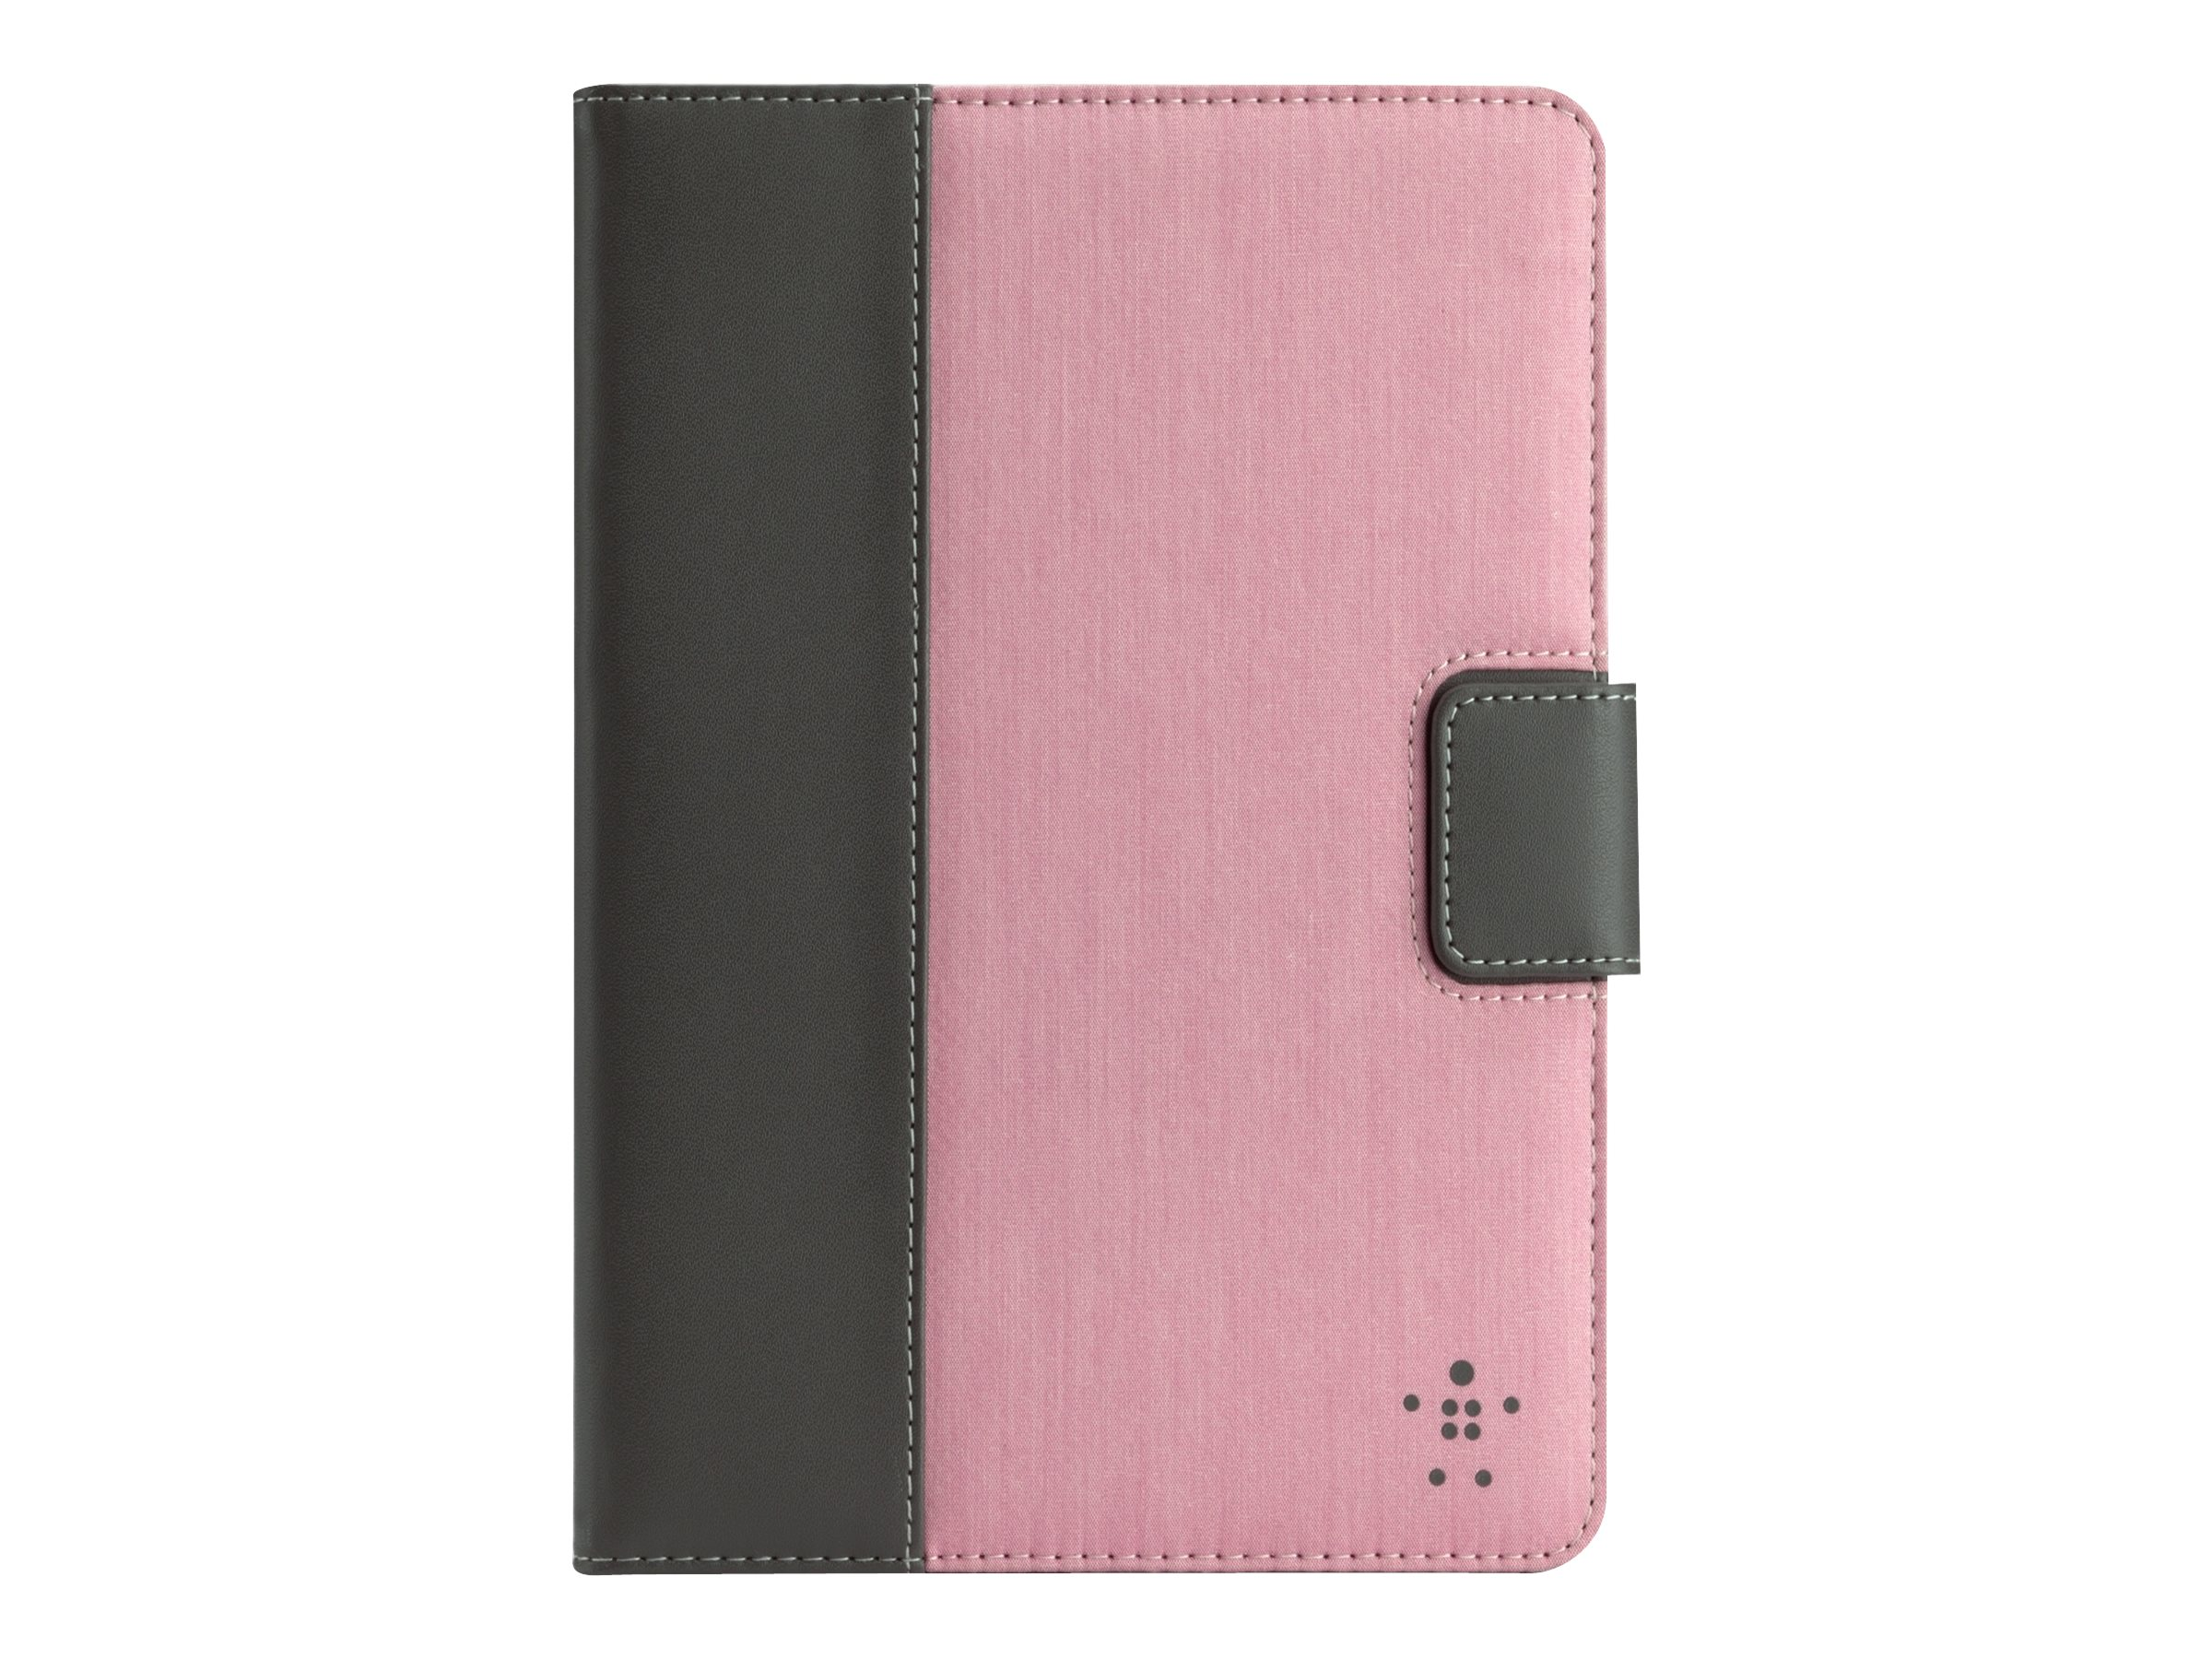 Belkin Chambray Tab Cover with Stand for iPad mini, Pink